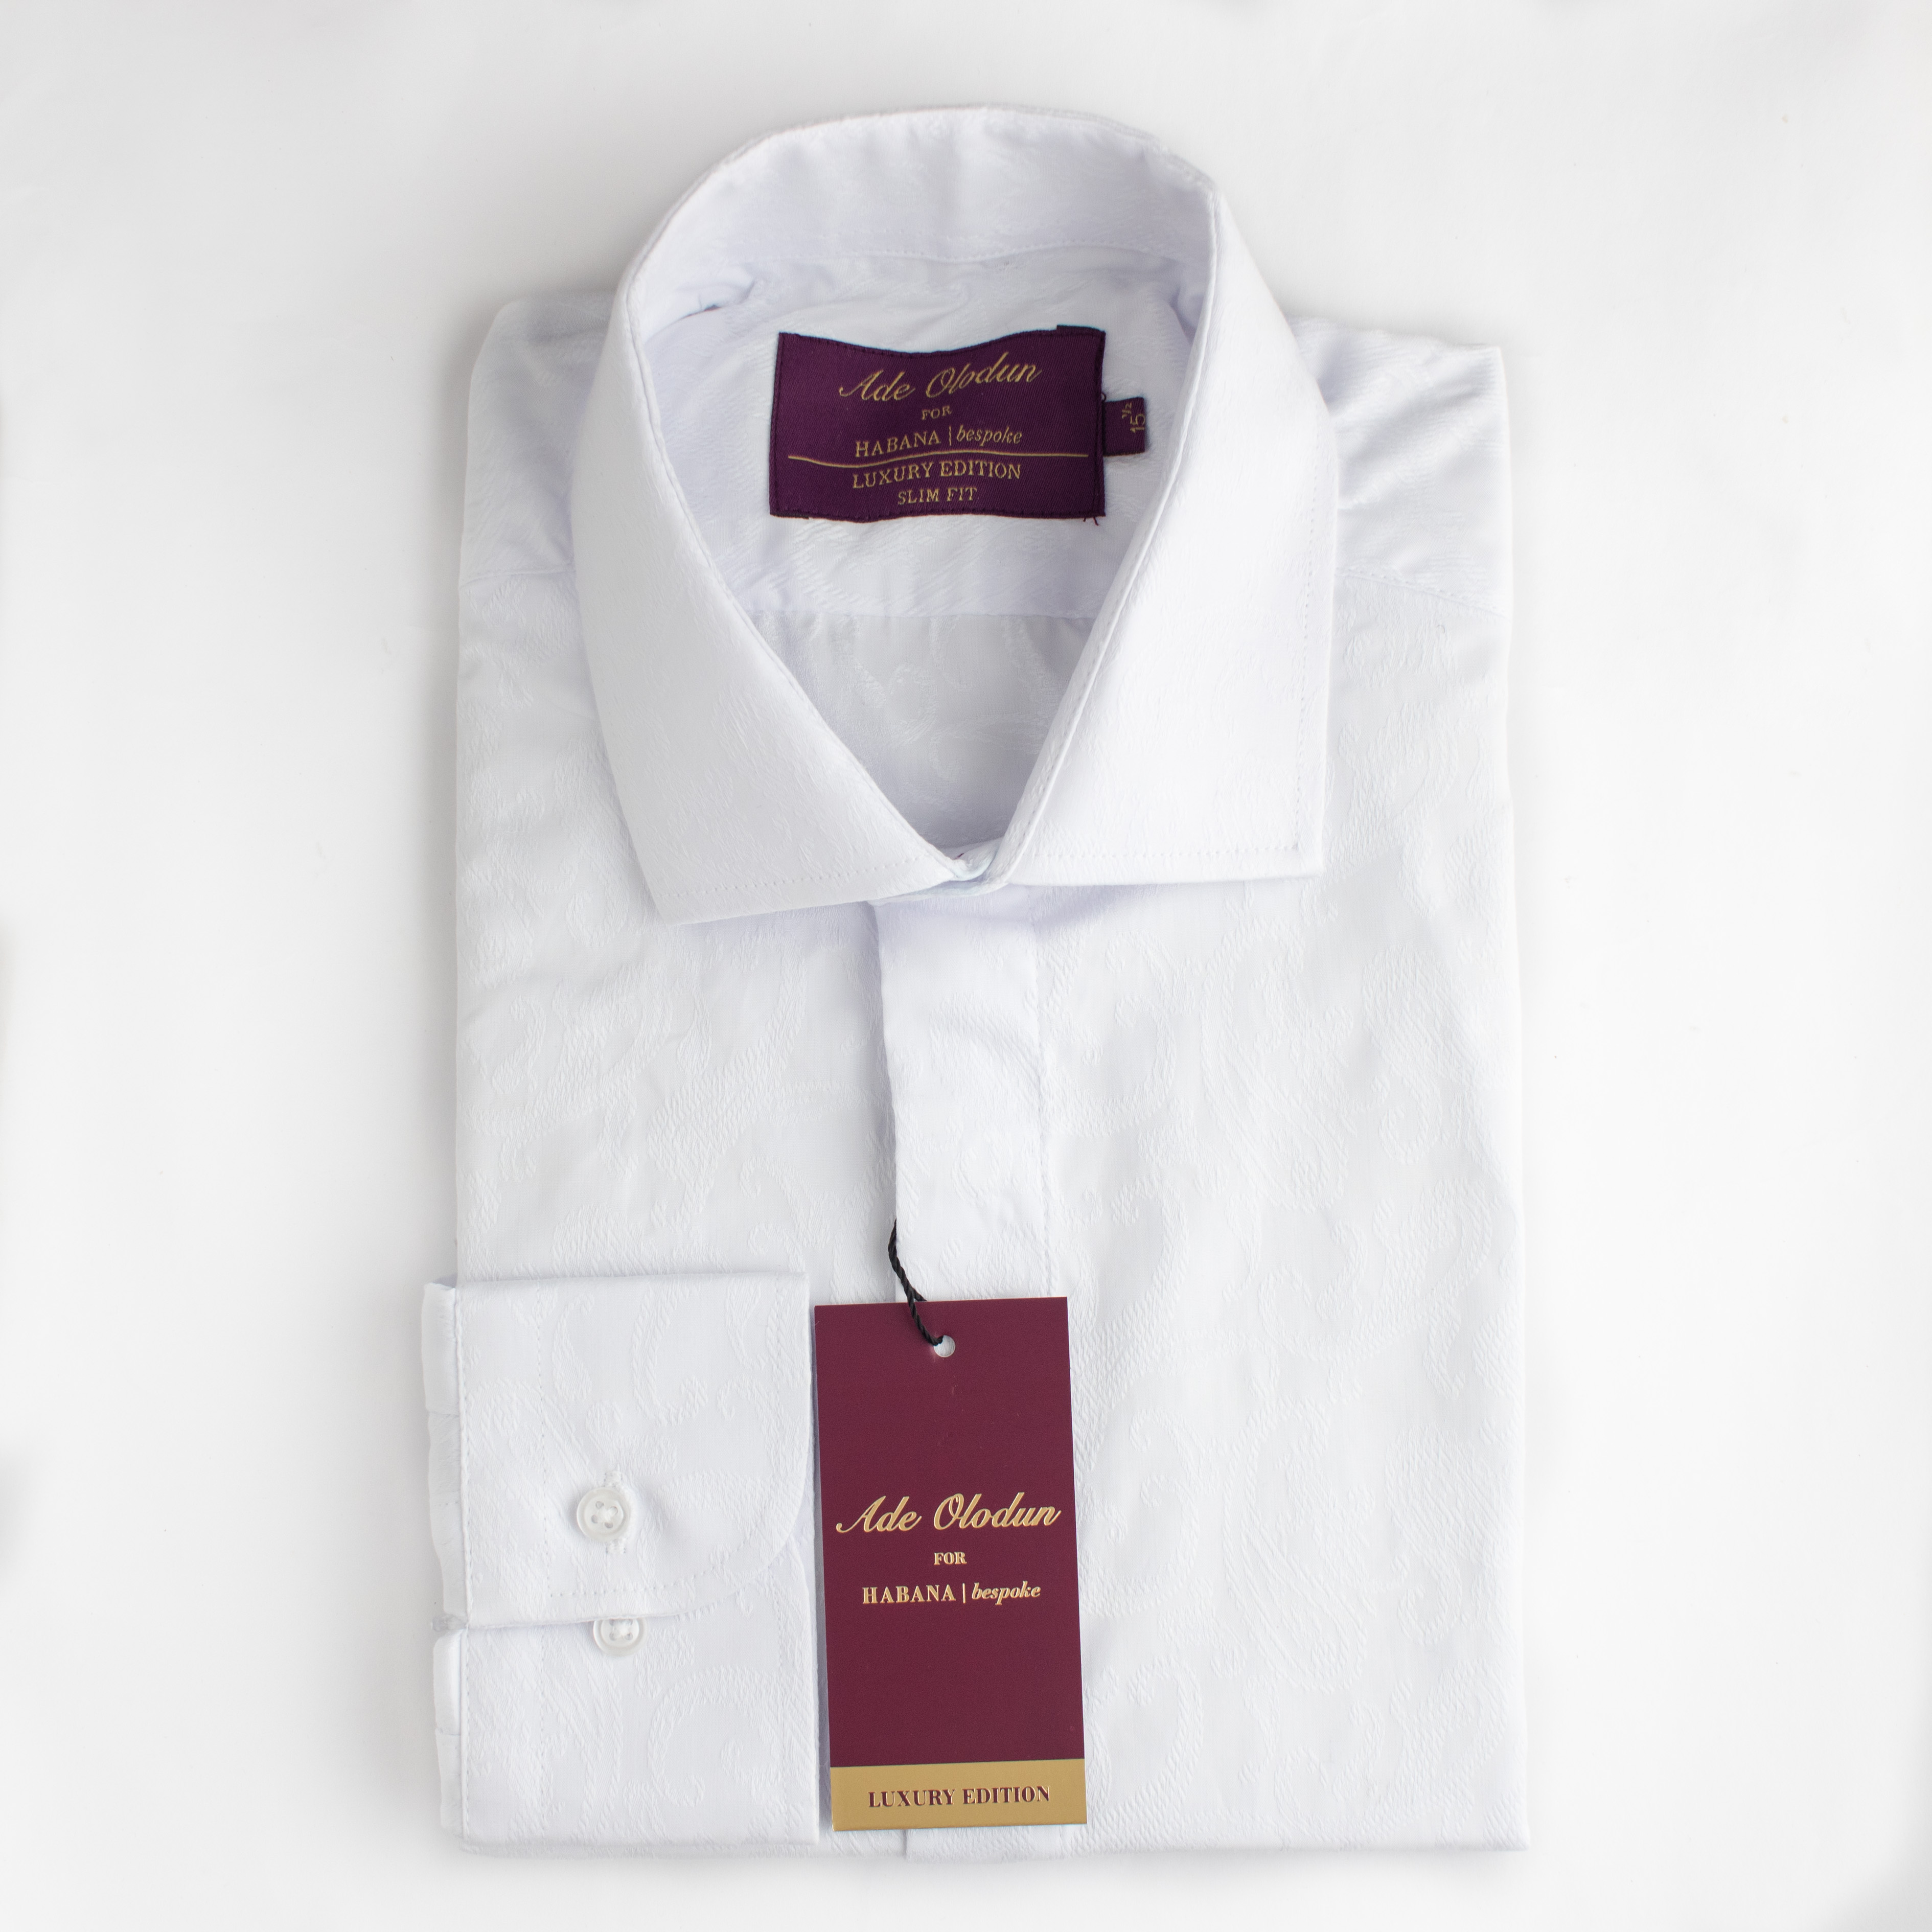 THERE IS NO GARMENT MORE DEPENDABLE THAN A CRISP WHITE SHIRT